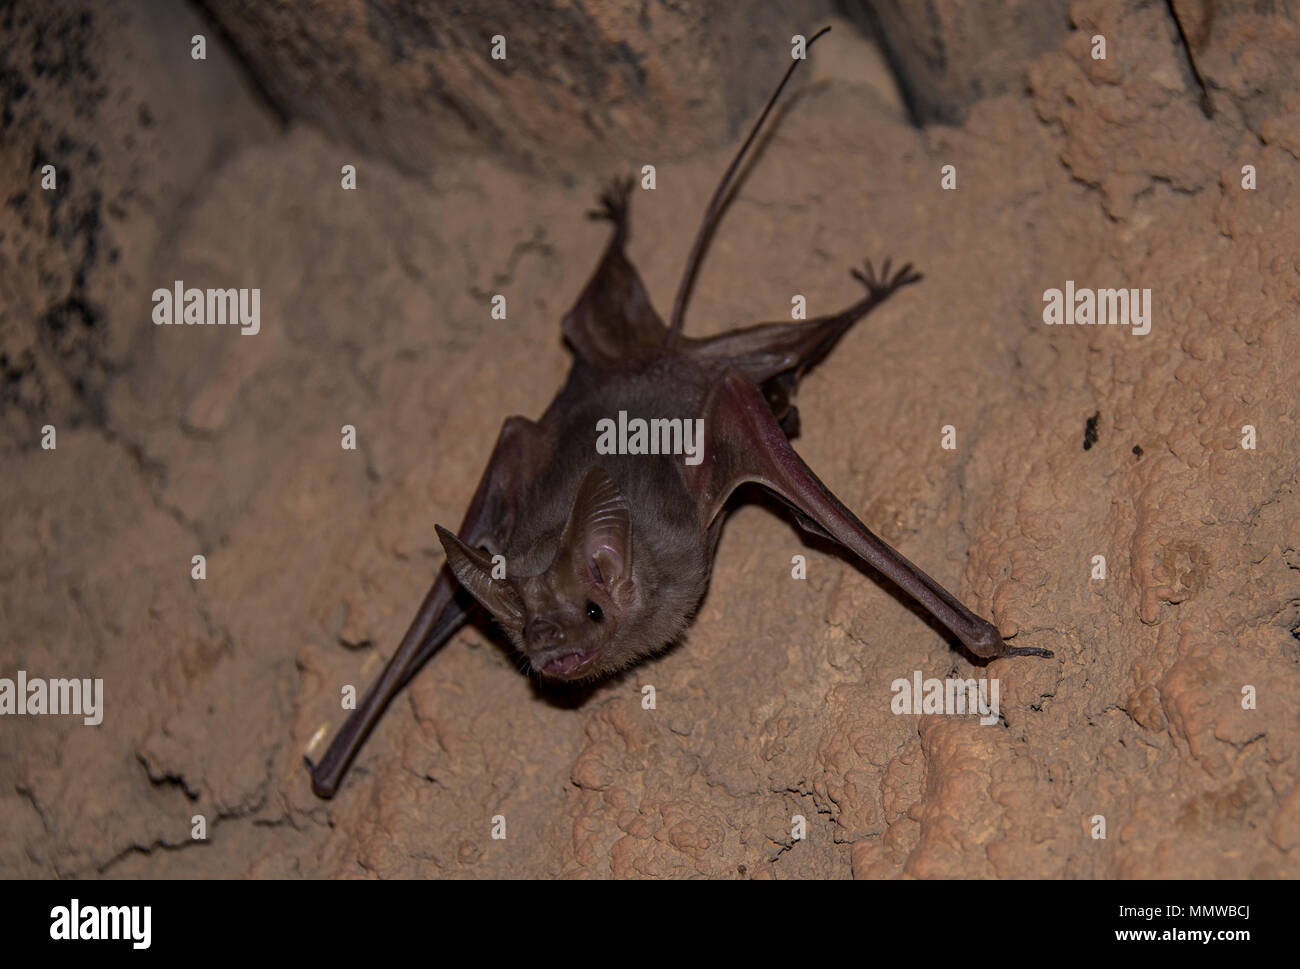 Common small vampire bat at sands cave - Stock Image